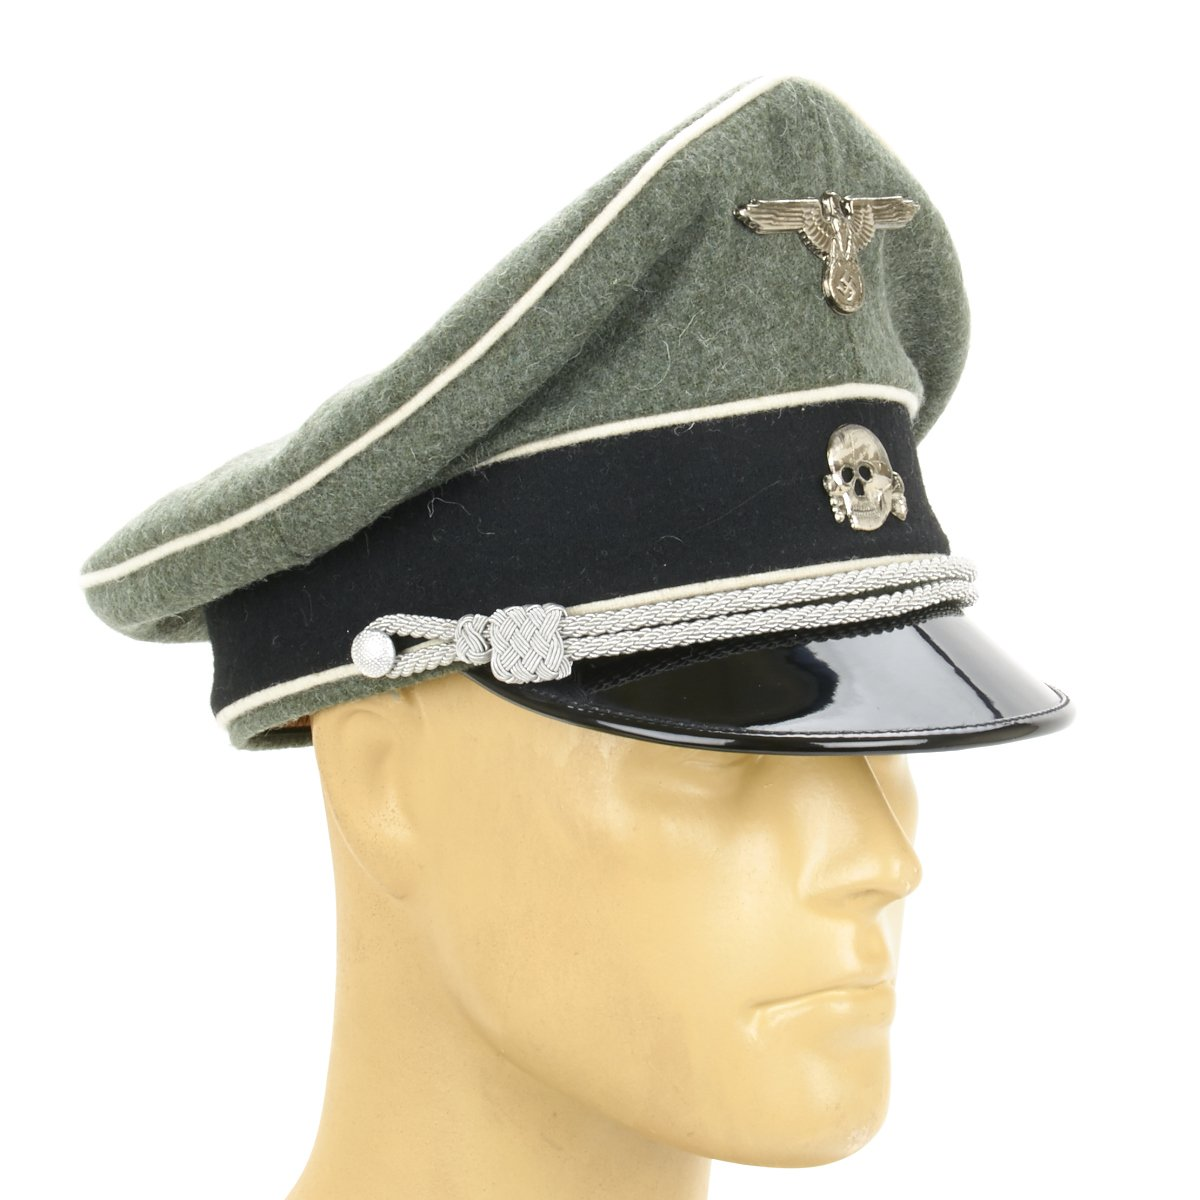 0beab76a893 German Waffen SS Officer Crusher Cap - Field Grey Wool with Metal Badges